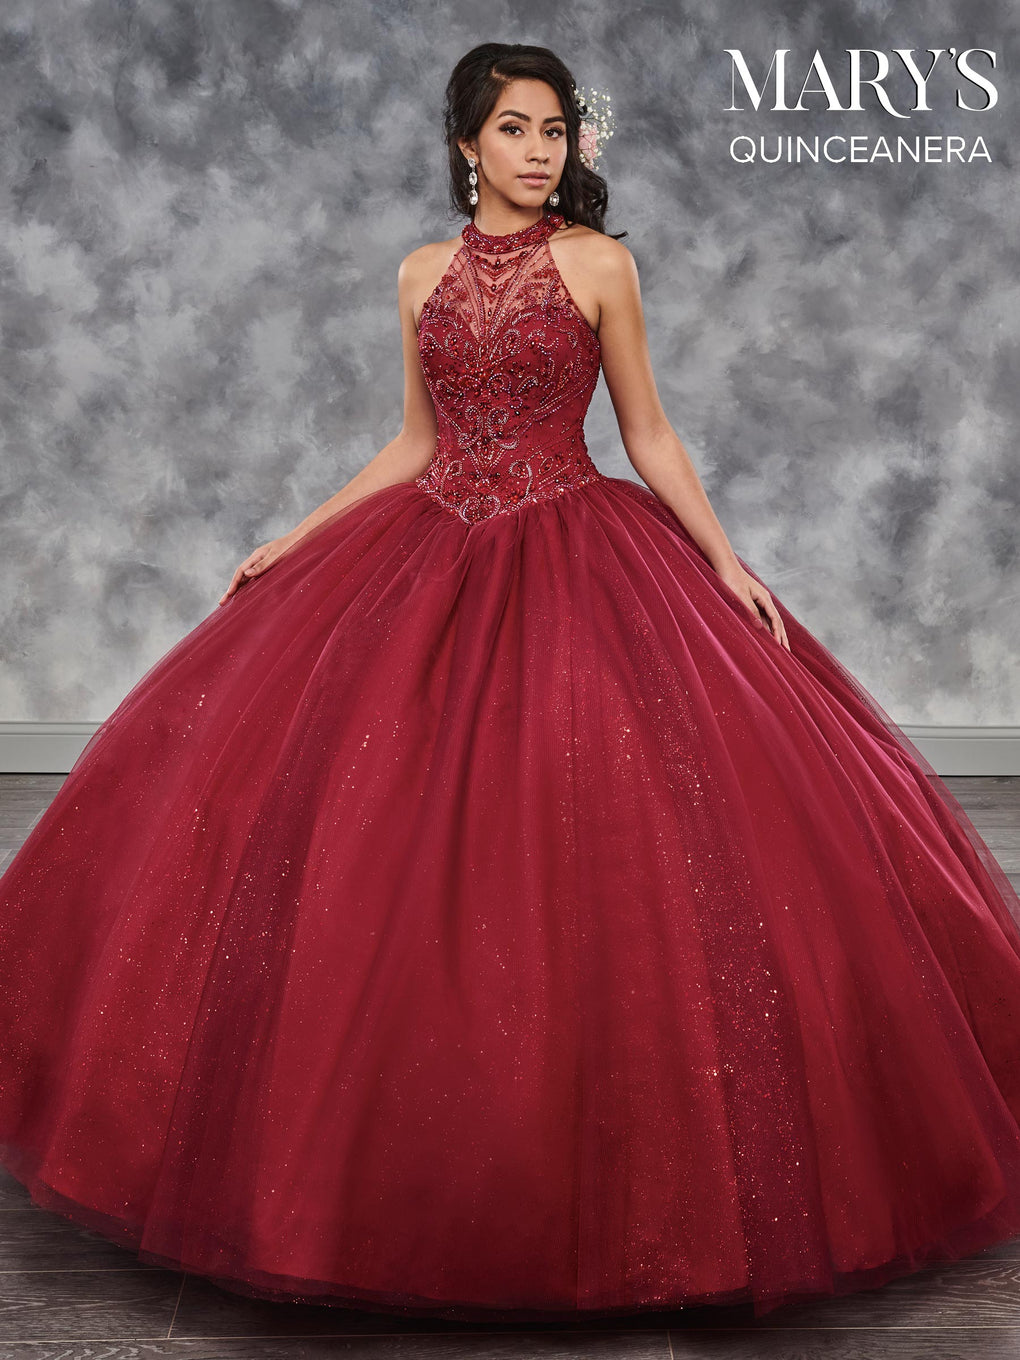 Marys Quinceanera Dresses in Navy, Wine, or White Color